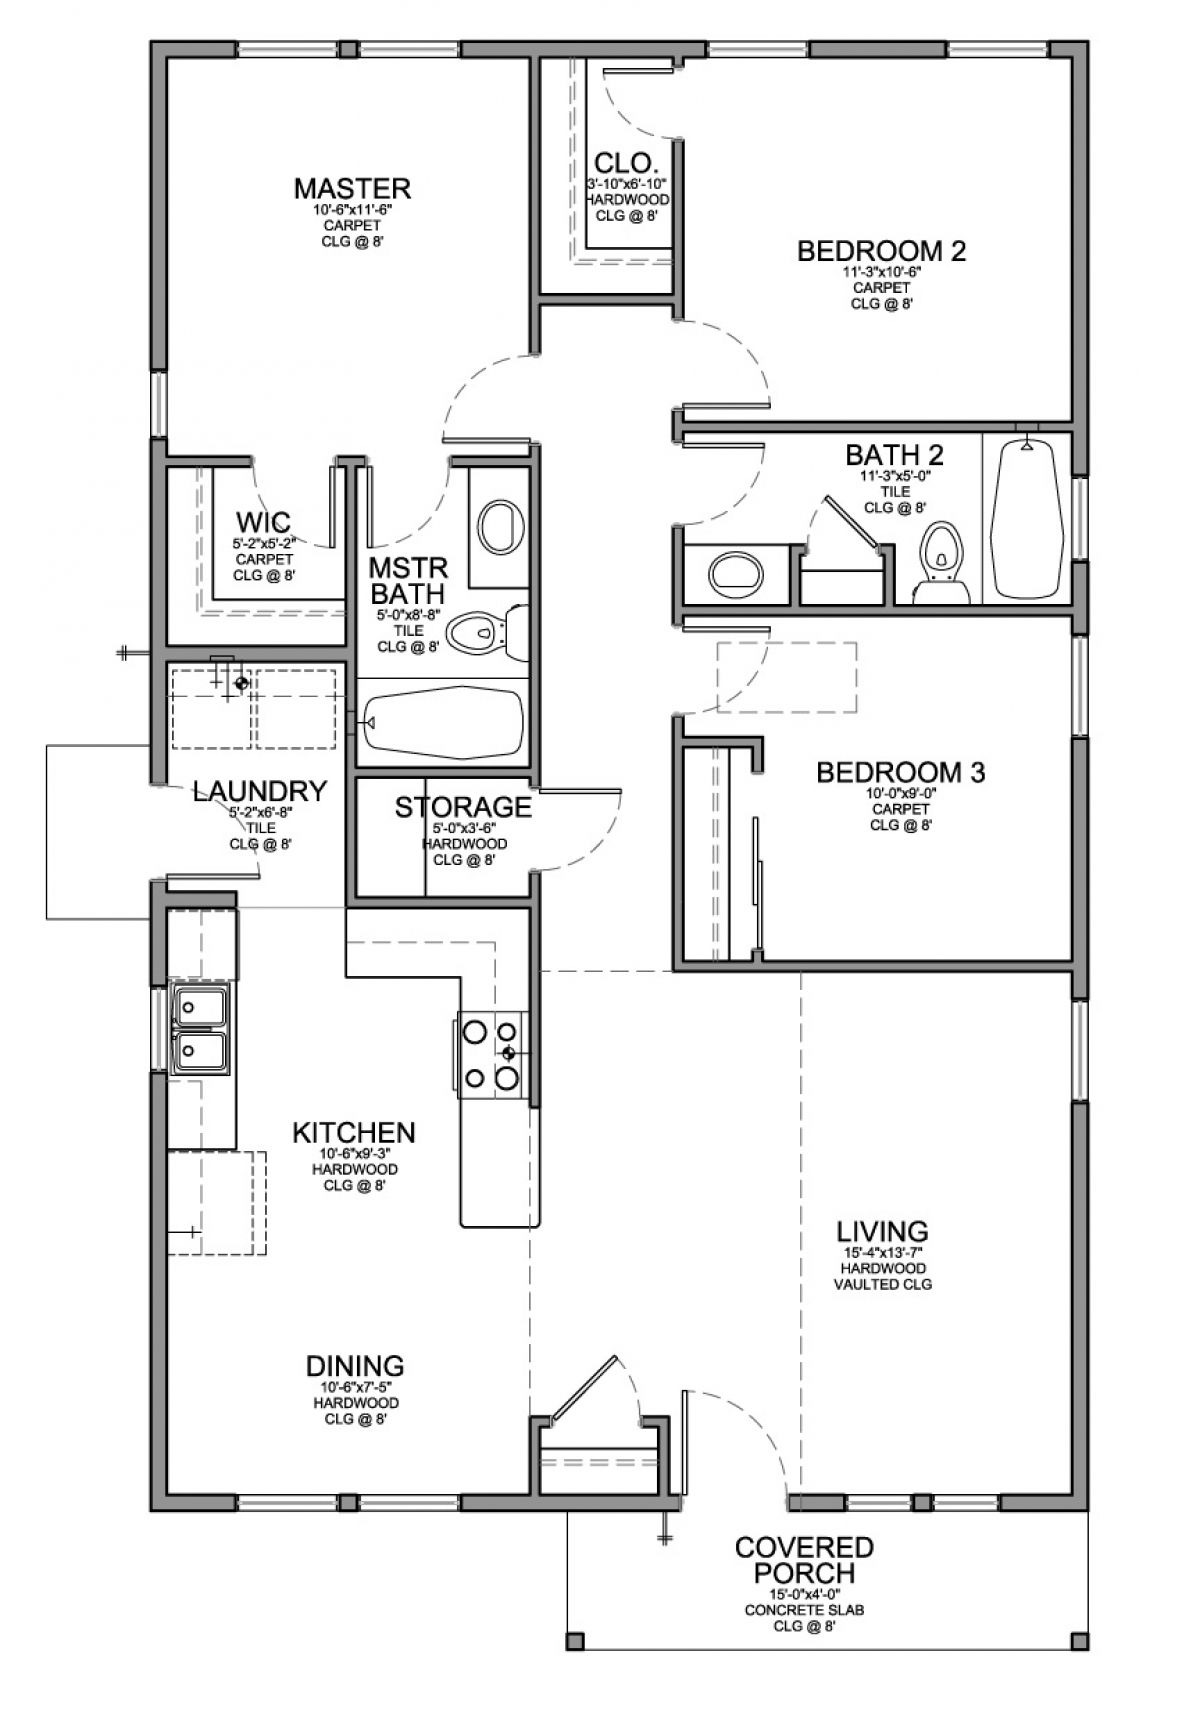 House Plans and Cost Elegant Floor Plans and Cost Build Plan for Small House Tamilnadu